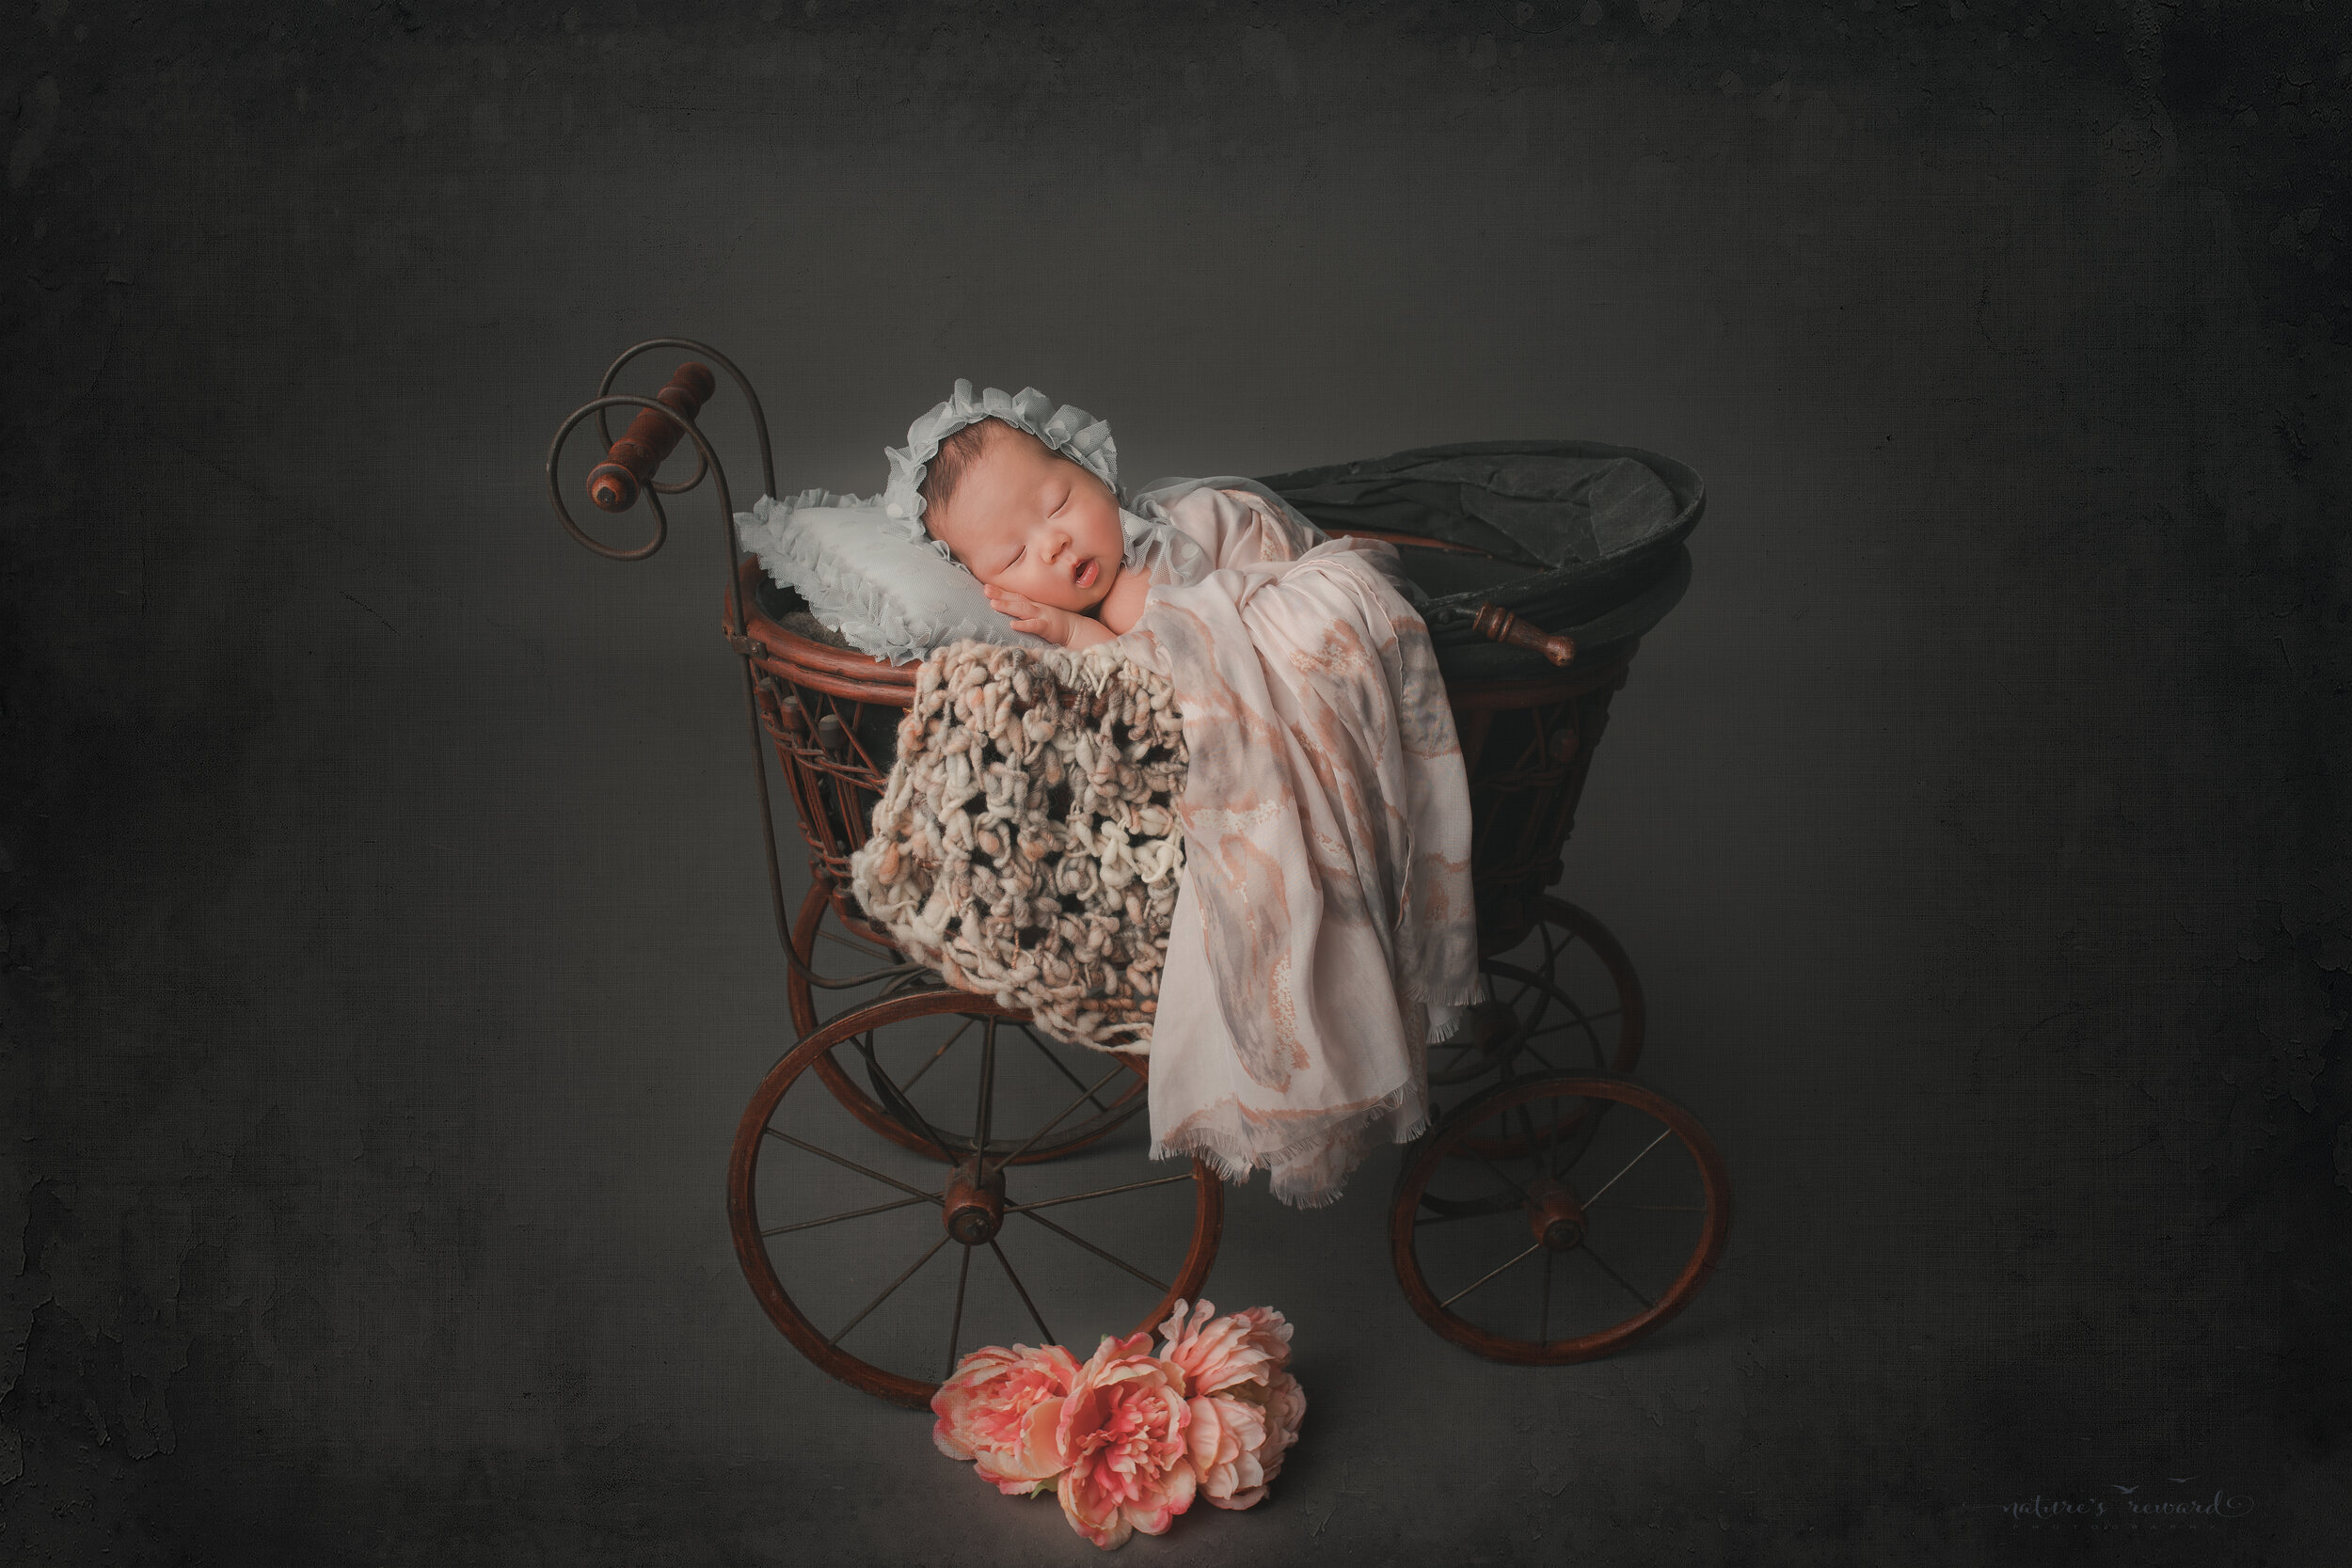 Newborn Baby girl in a BLue bonnet on a blue pillow in a tram in a studio portrait by nature's Reward Photography